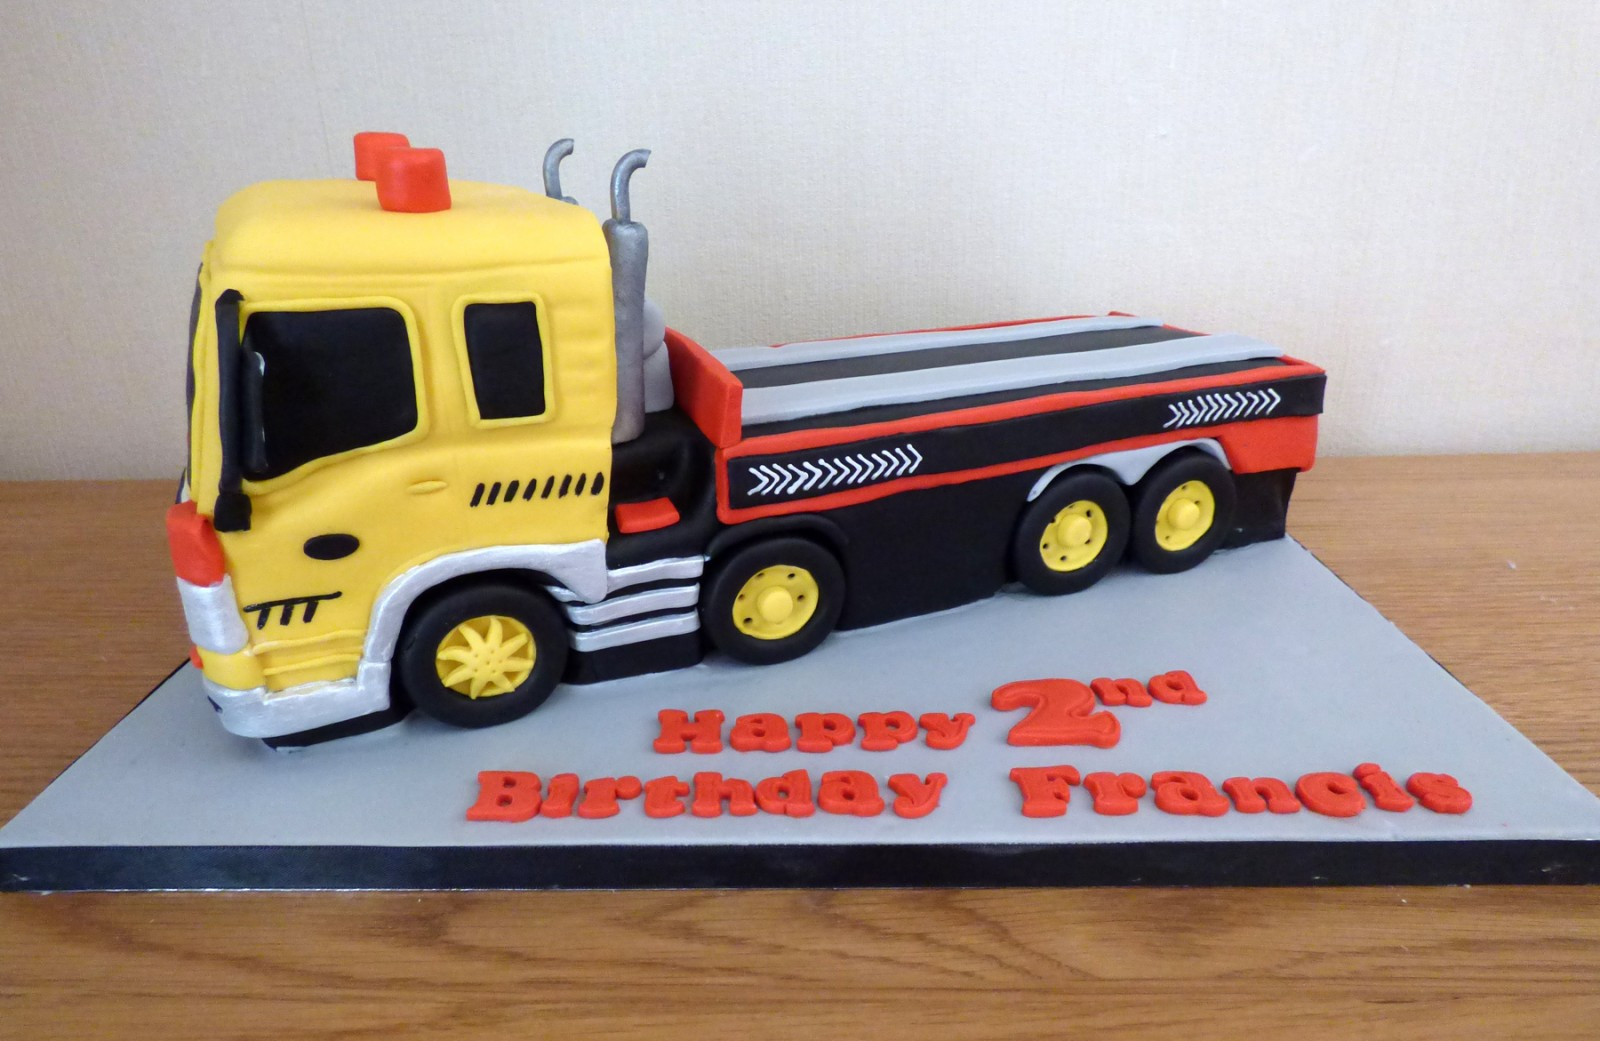 Enjoyable Recovery Truck Birthday Cake Susies Cakes Funny Birthday Cards Online Fluifree Goldxyz